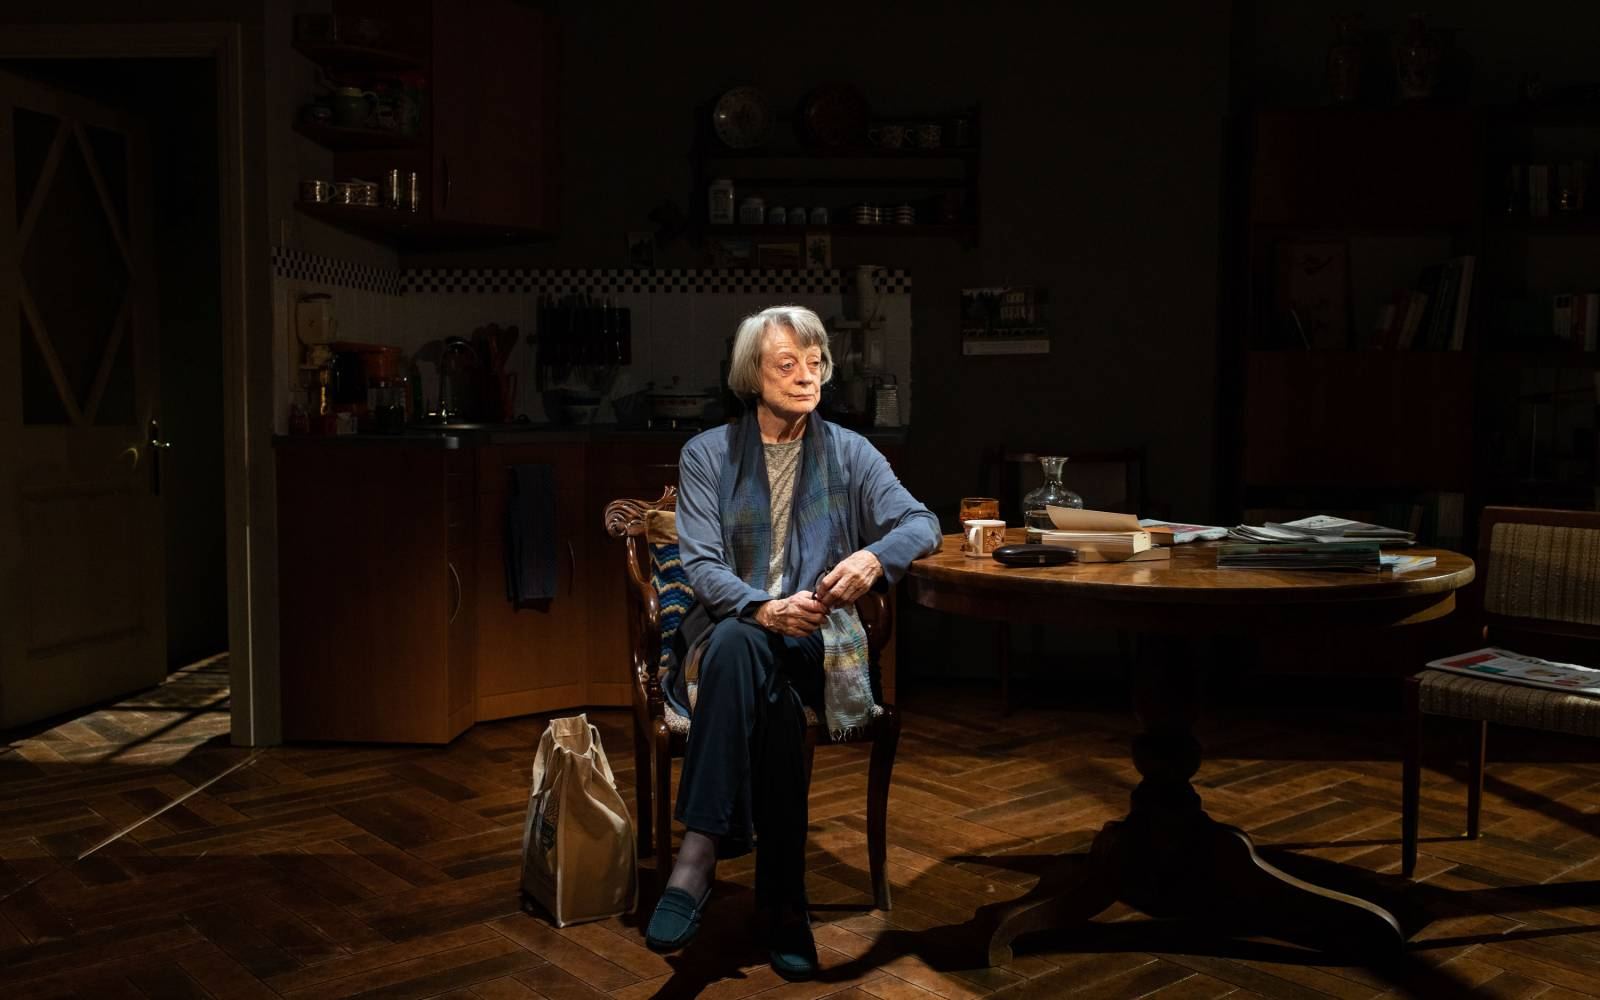 An older woman sits alone in a darkened kitchen, her elbow leaning against a table